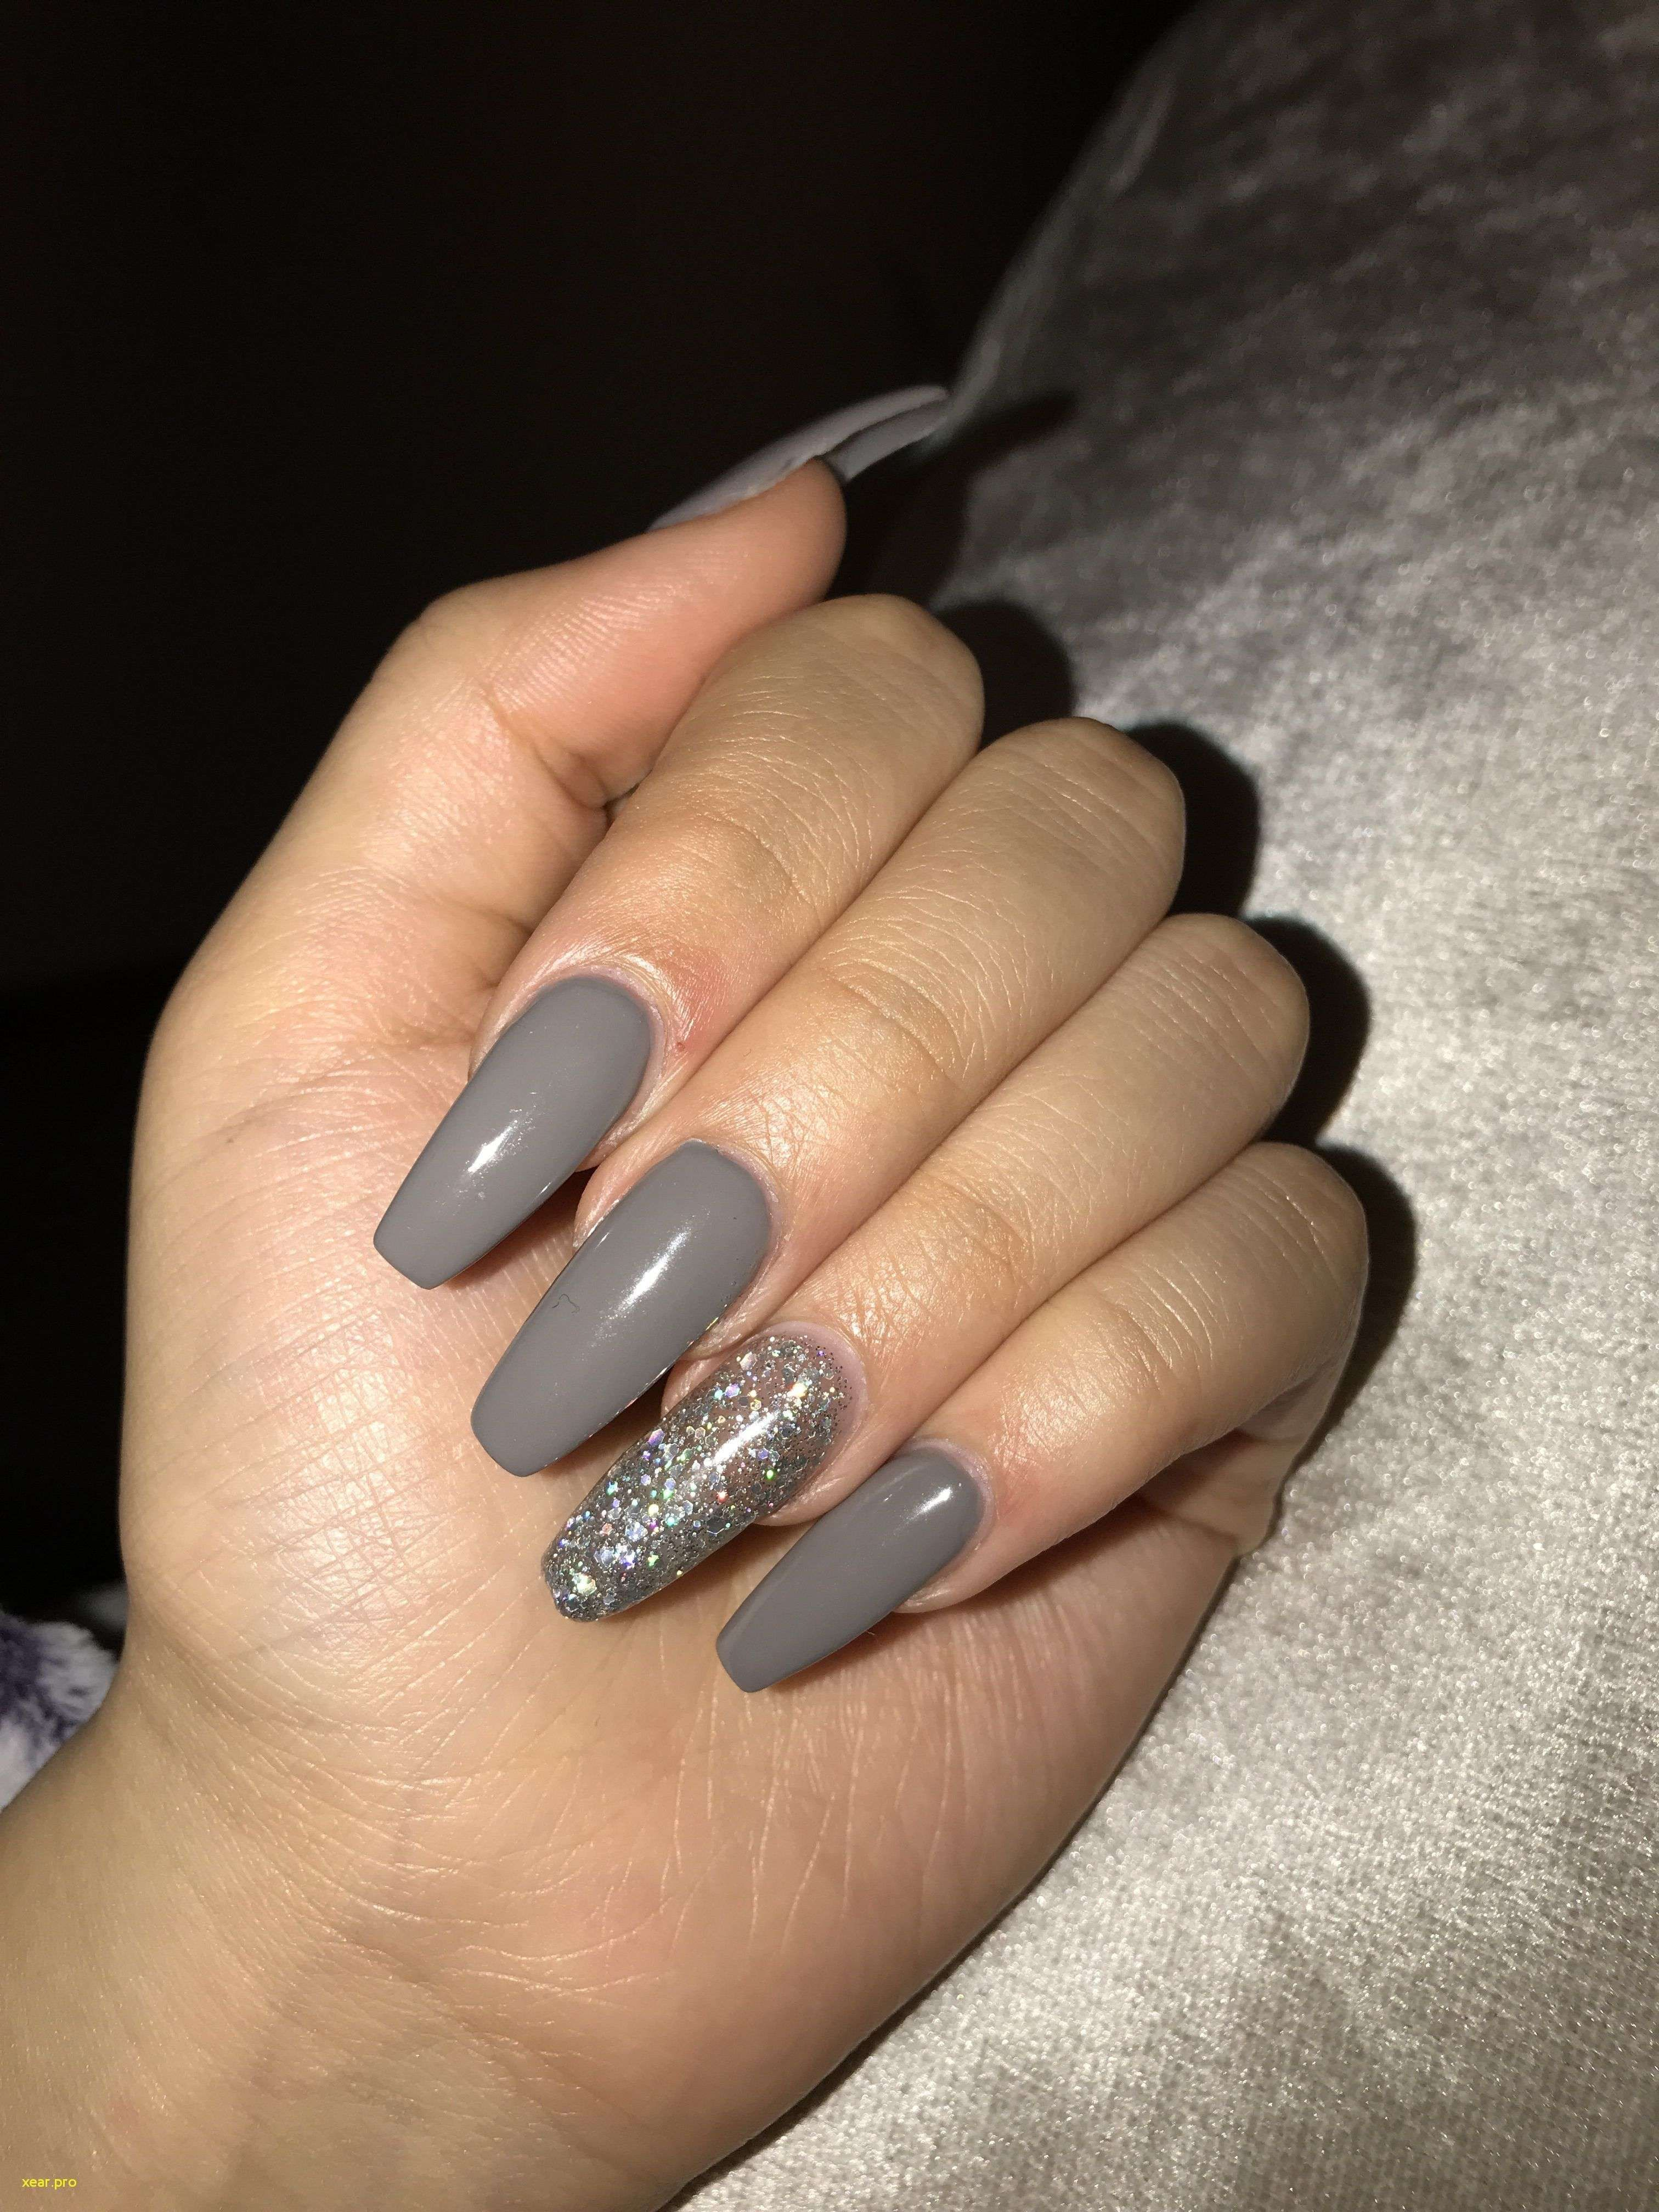 Camaxid Com Nbspcamaxid Resources And Information In 2020 Grey Acrylic Nails Prom Nails Prom Nails Silver